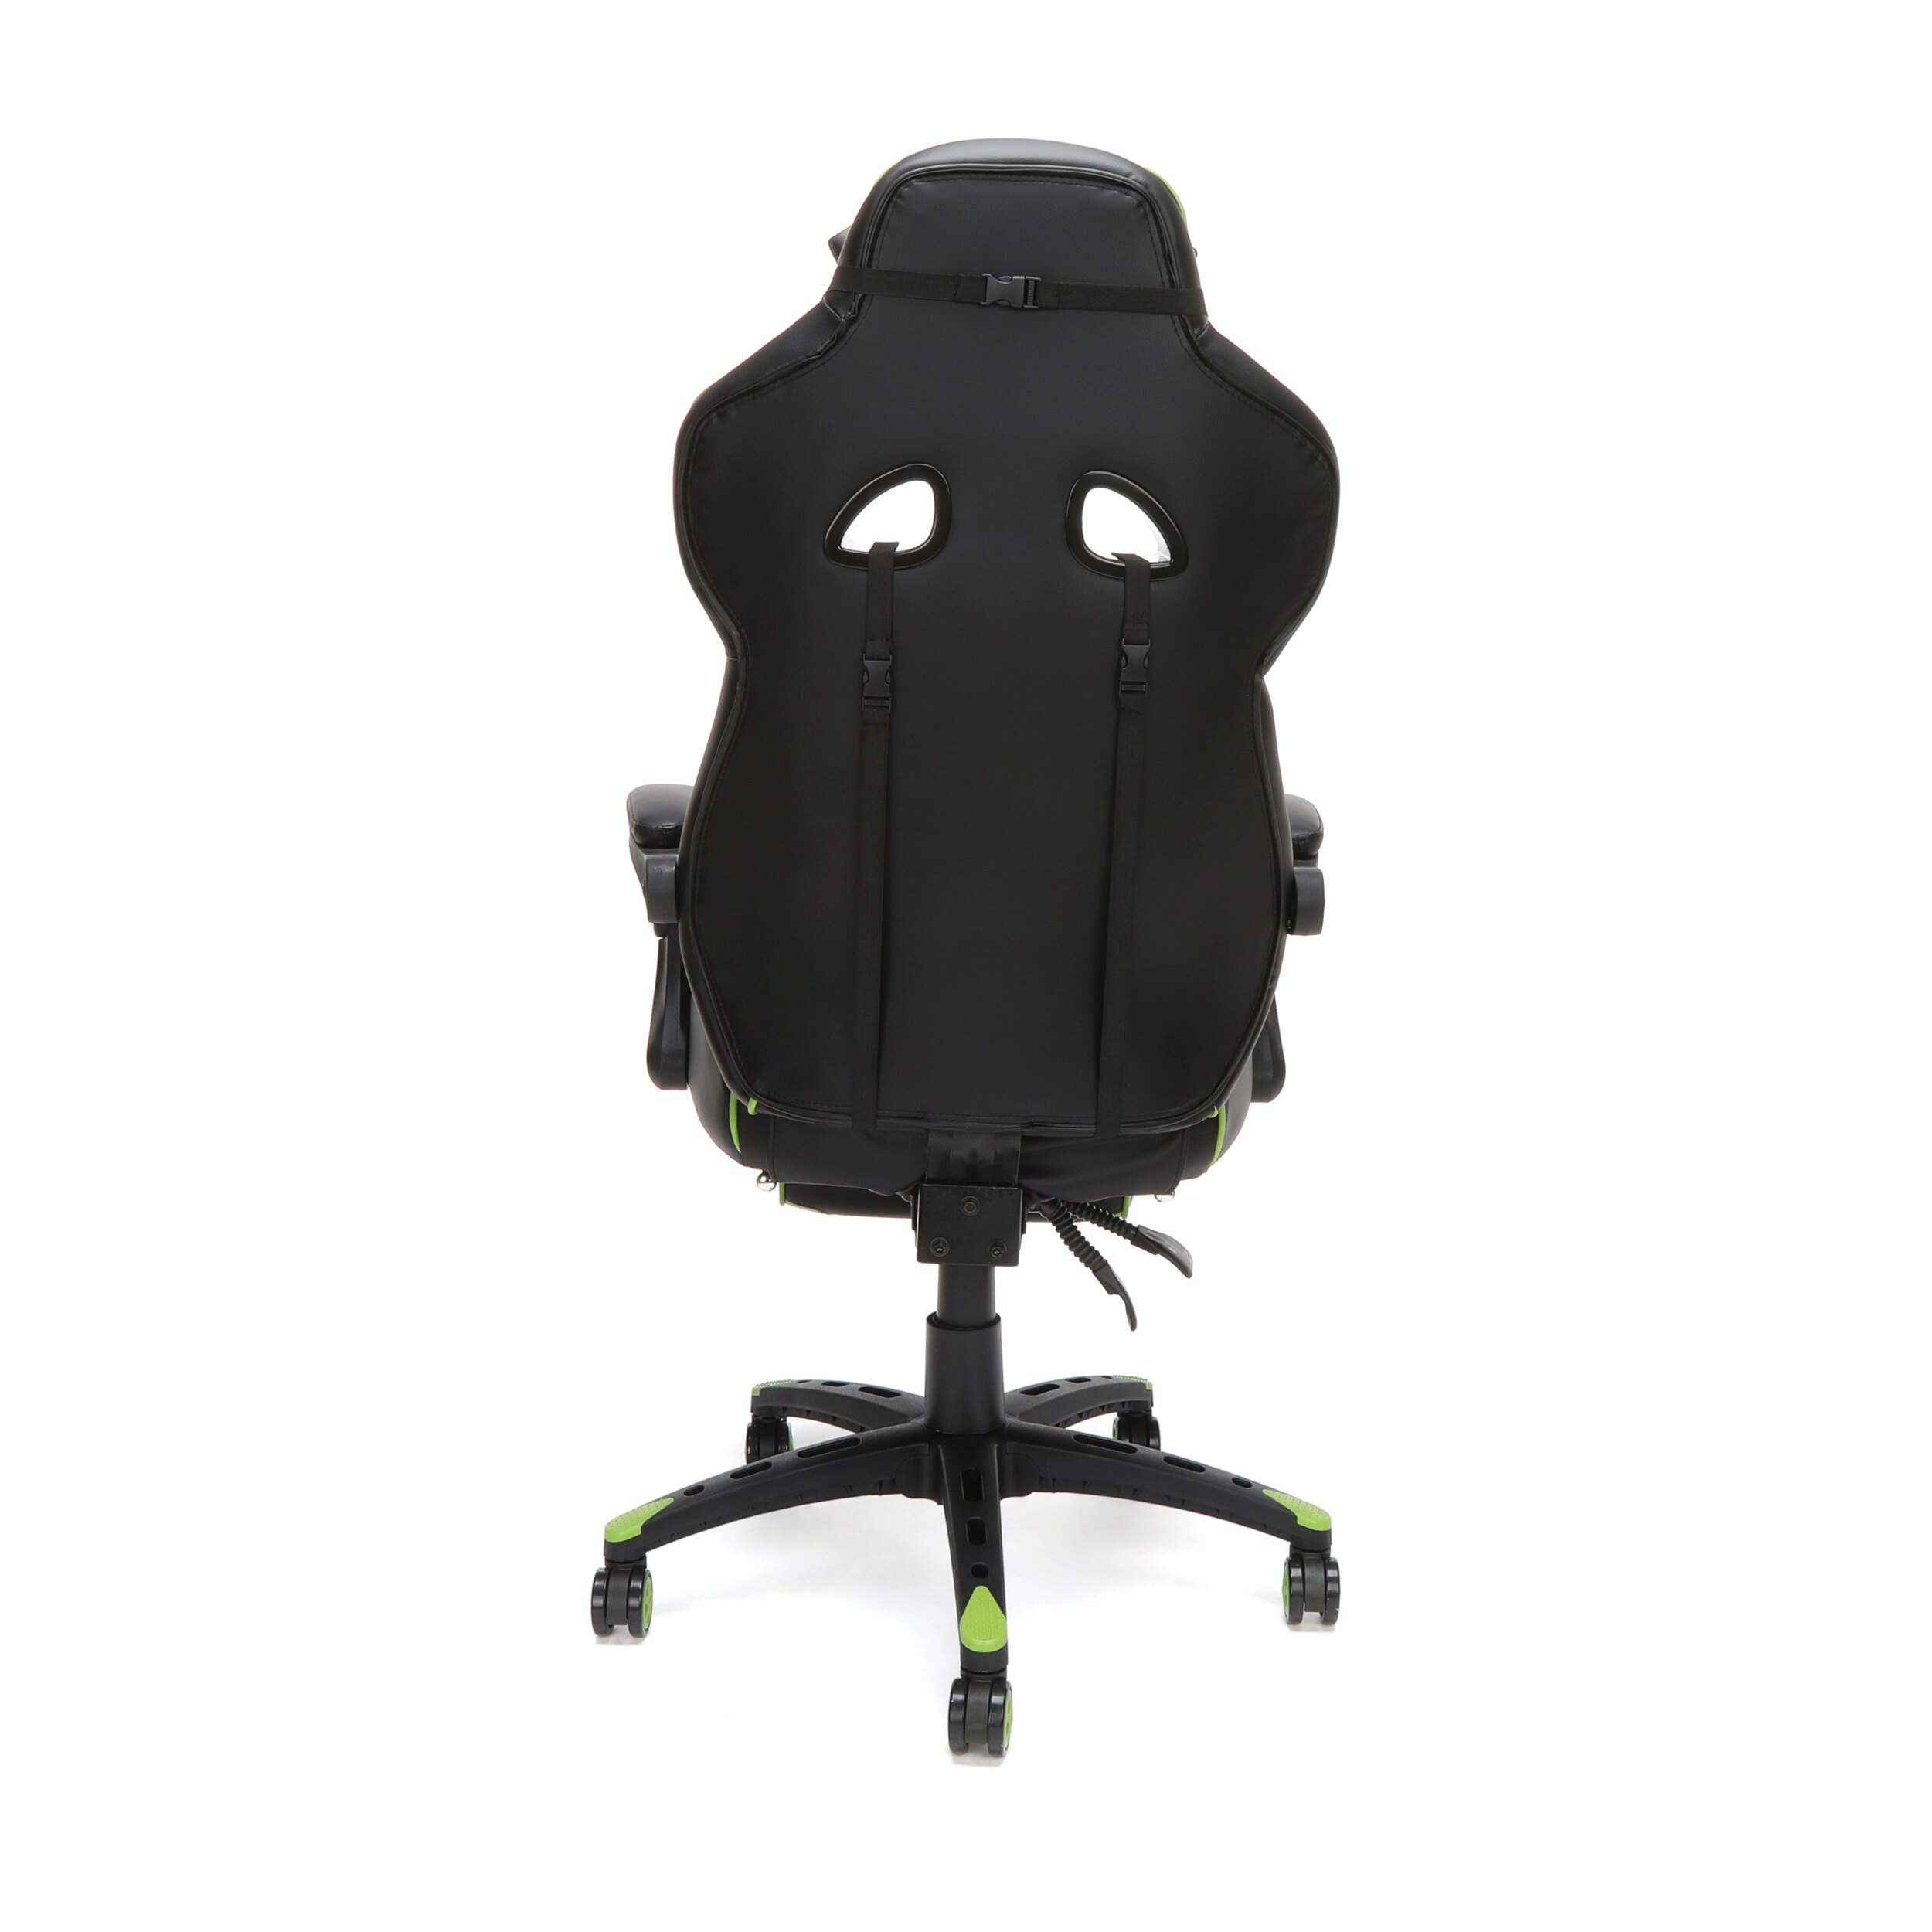 Stupendous Respawn 110 Racing Style Gaming Chair Reclining Ergonomic Leather Chair With Footrest Office Or Gaming Chair Green Rsp 110 Pabps2019 Chair Design Images Pabps2019Com